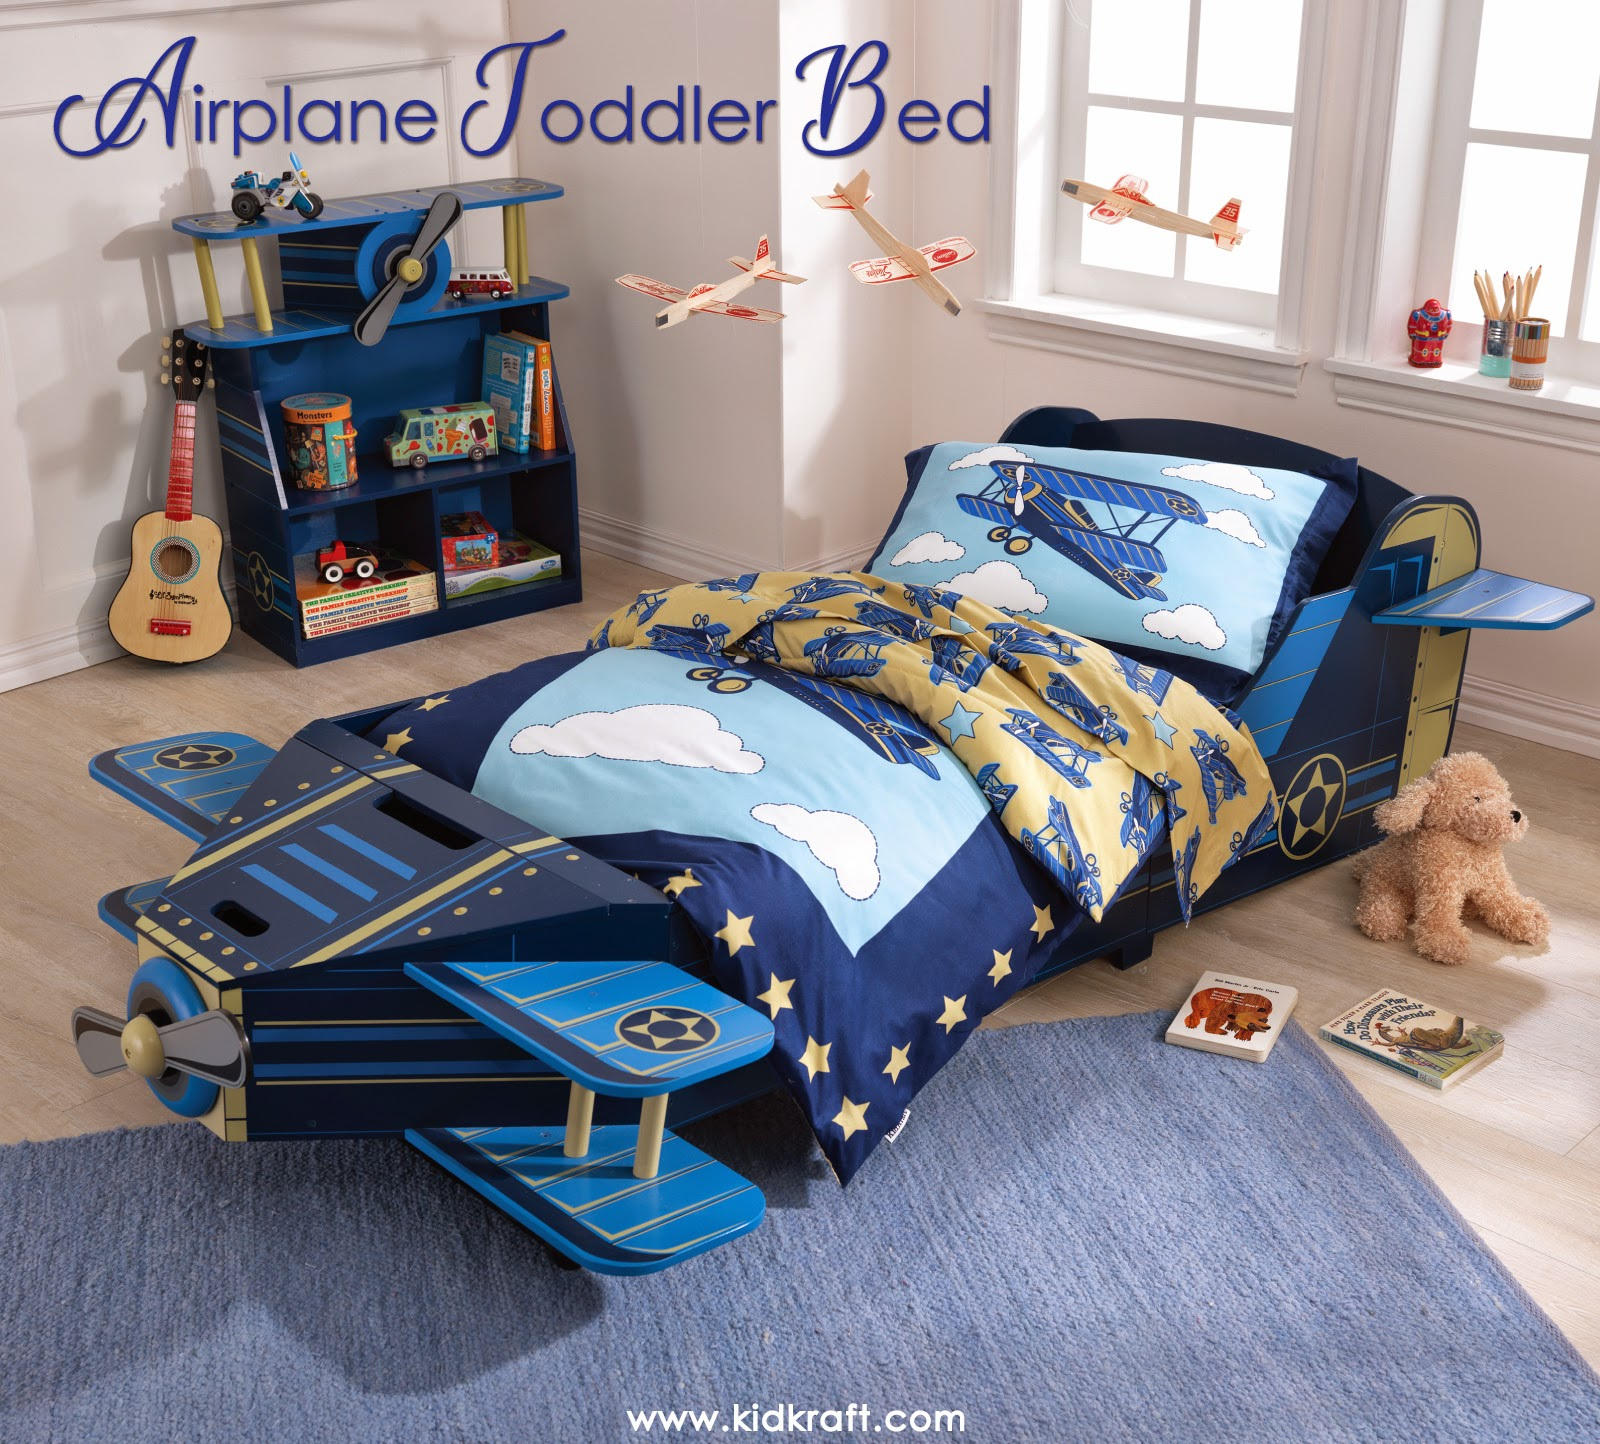 KidKraft Toys Amp Furniture Airplane Toddler Bed